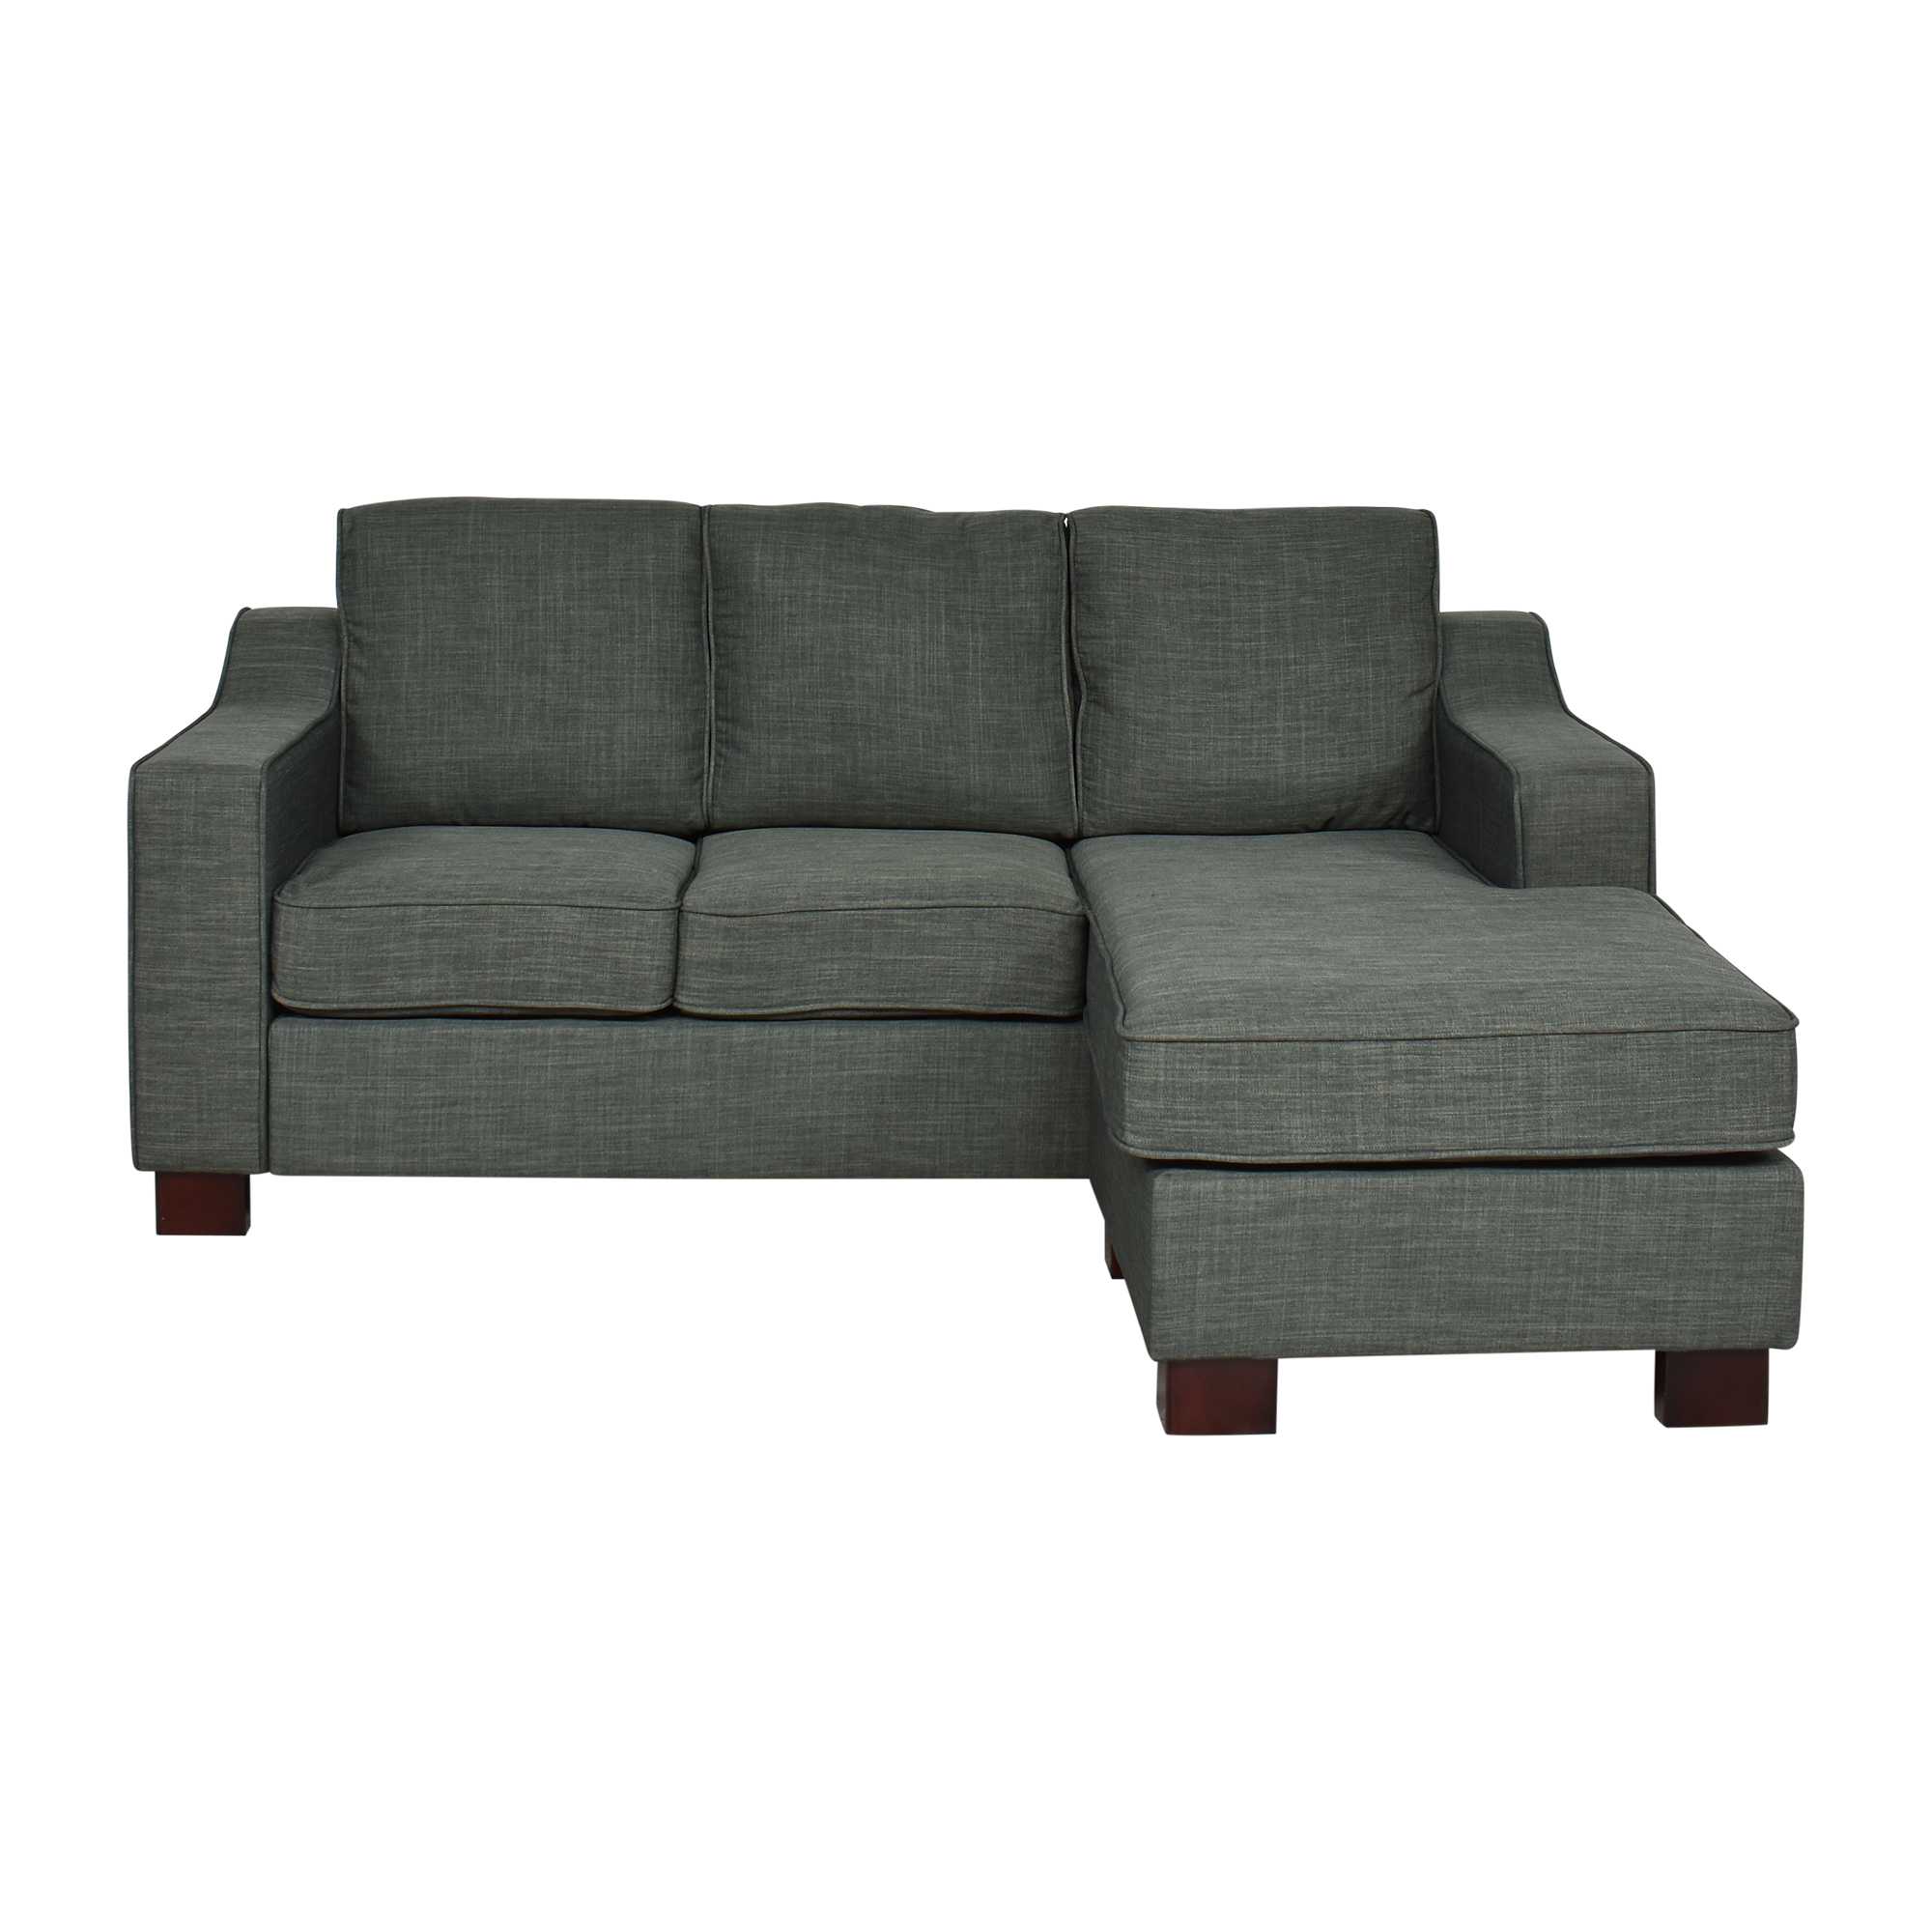 Joss & Main Joss & Main Broussard Sectional with Chaise used